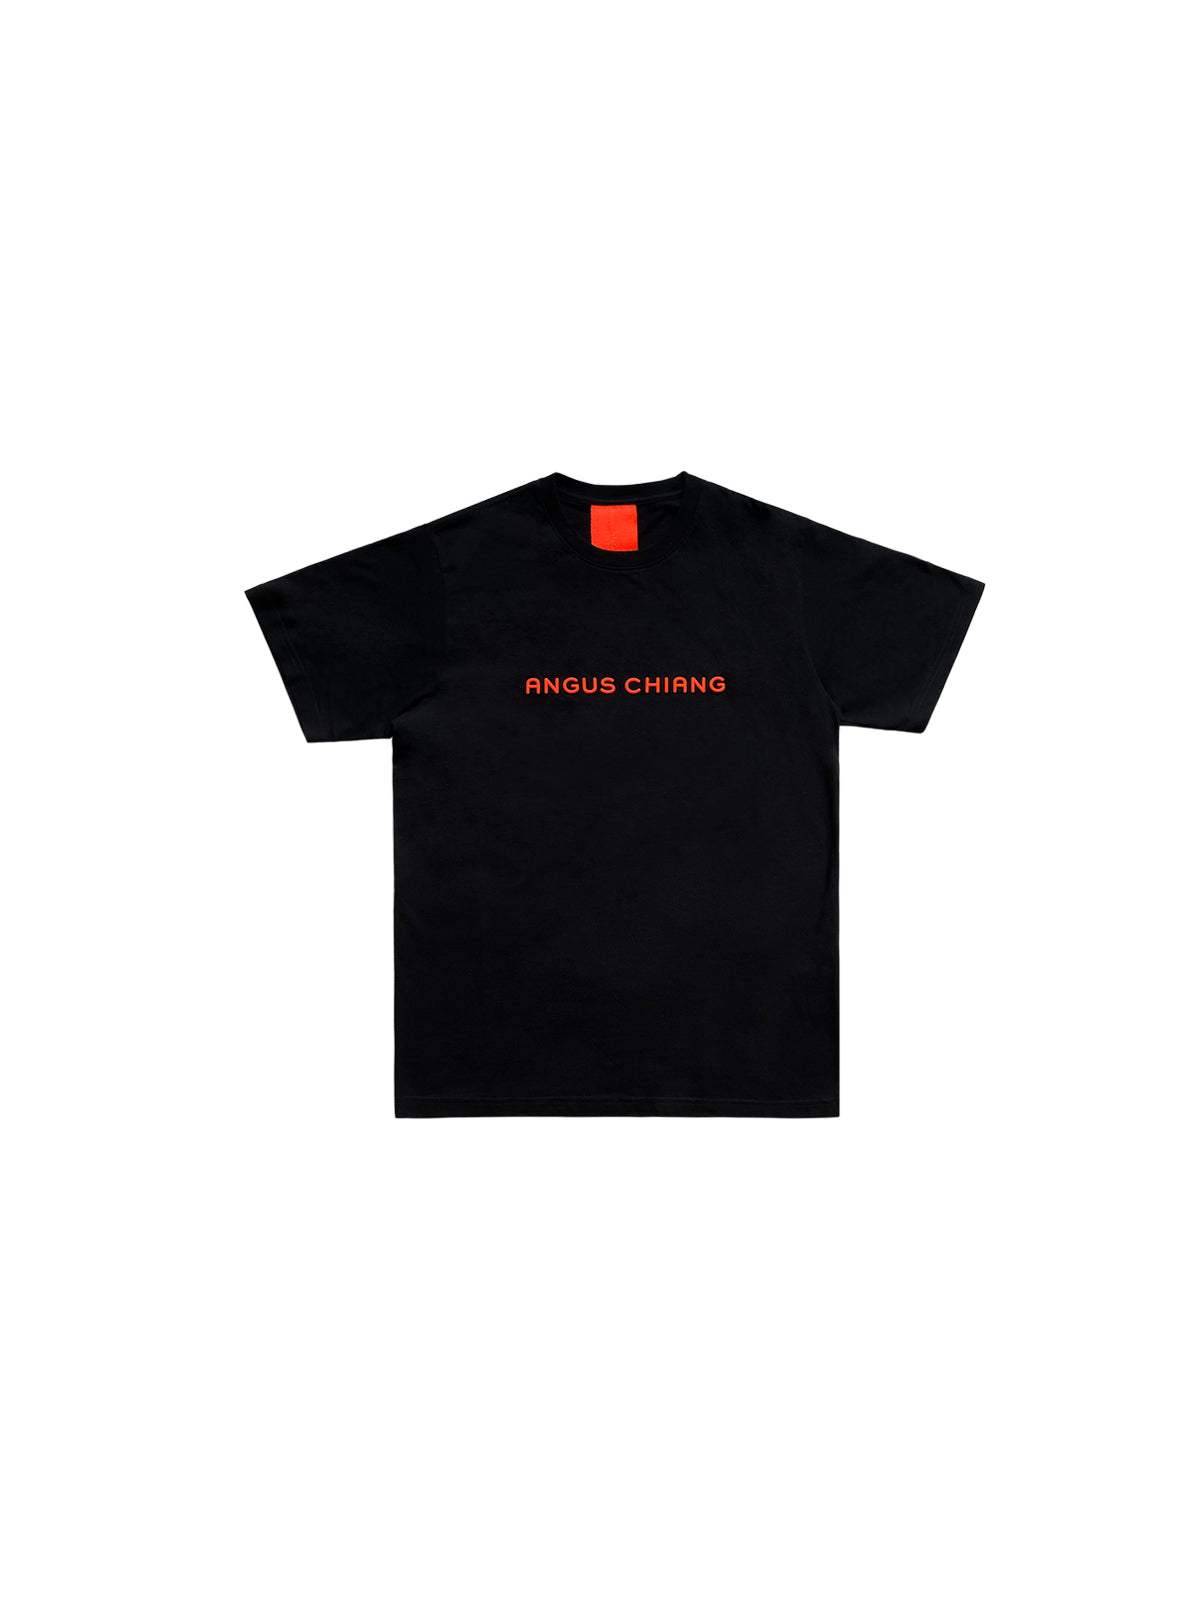 [ 517 LOVE WINS PROJECT ] ANGUS CHIANG CLASSIC LOGO T-SHIRT